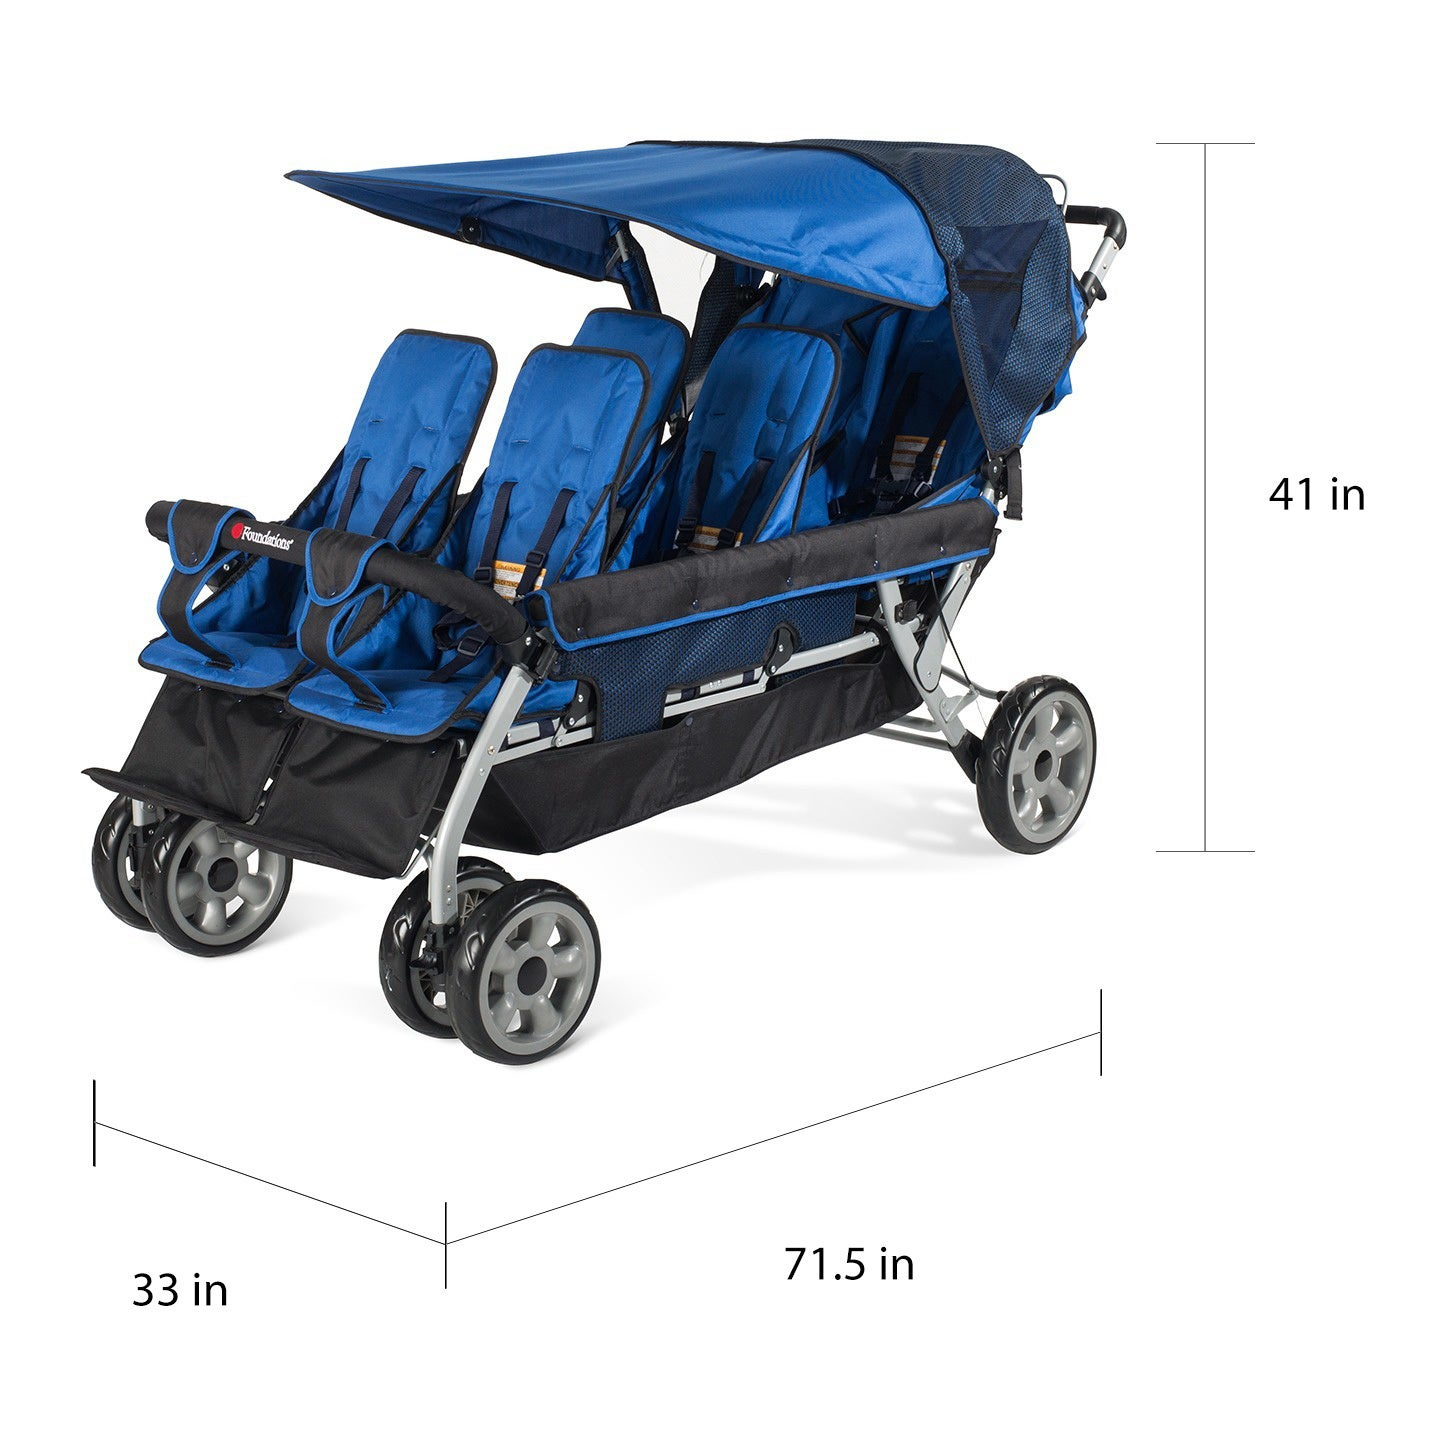 8ba688486c3b Shop Foundations LX6 6-Passenger Stroller - Free Shipping Today ...